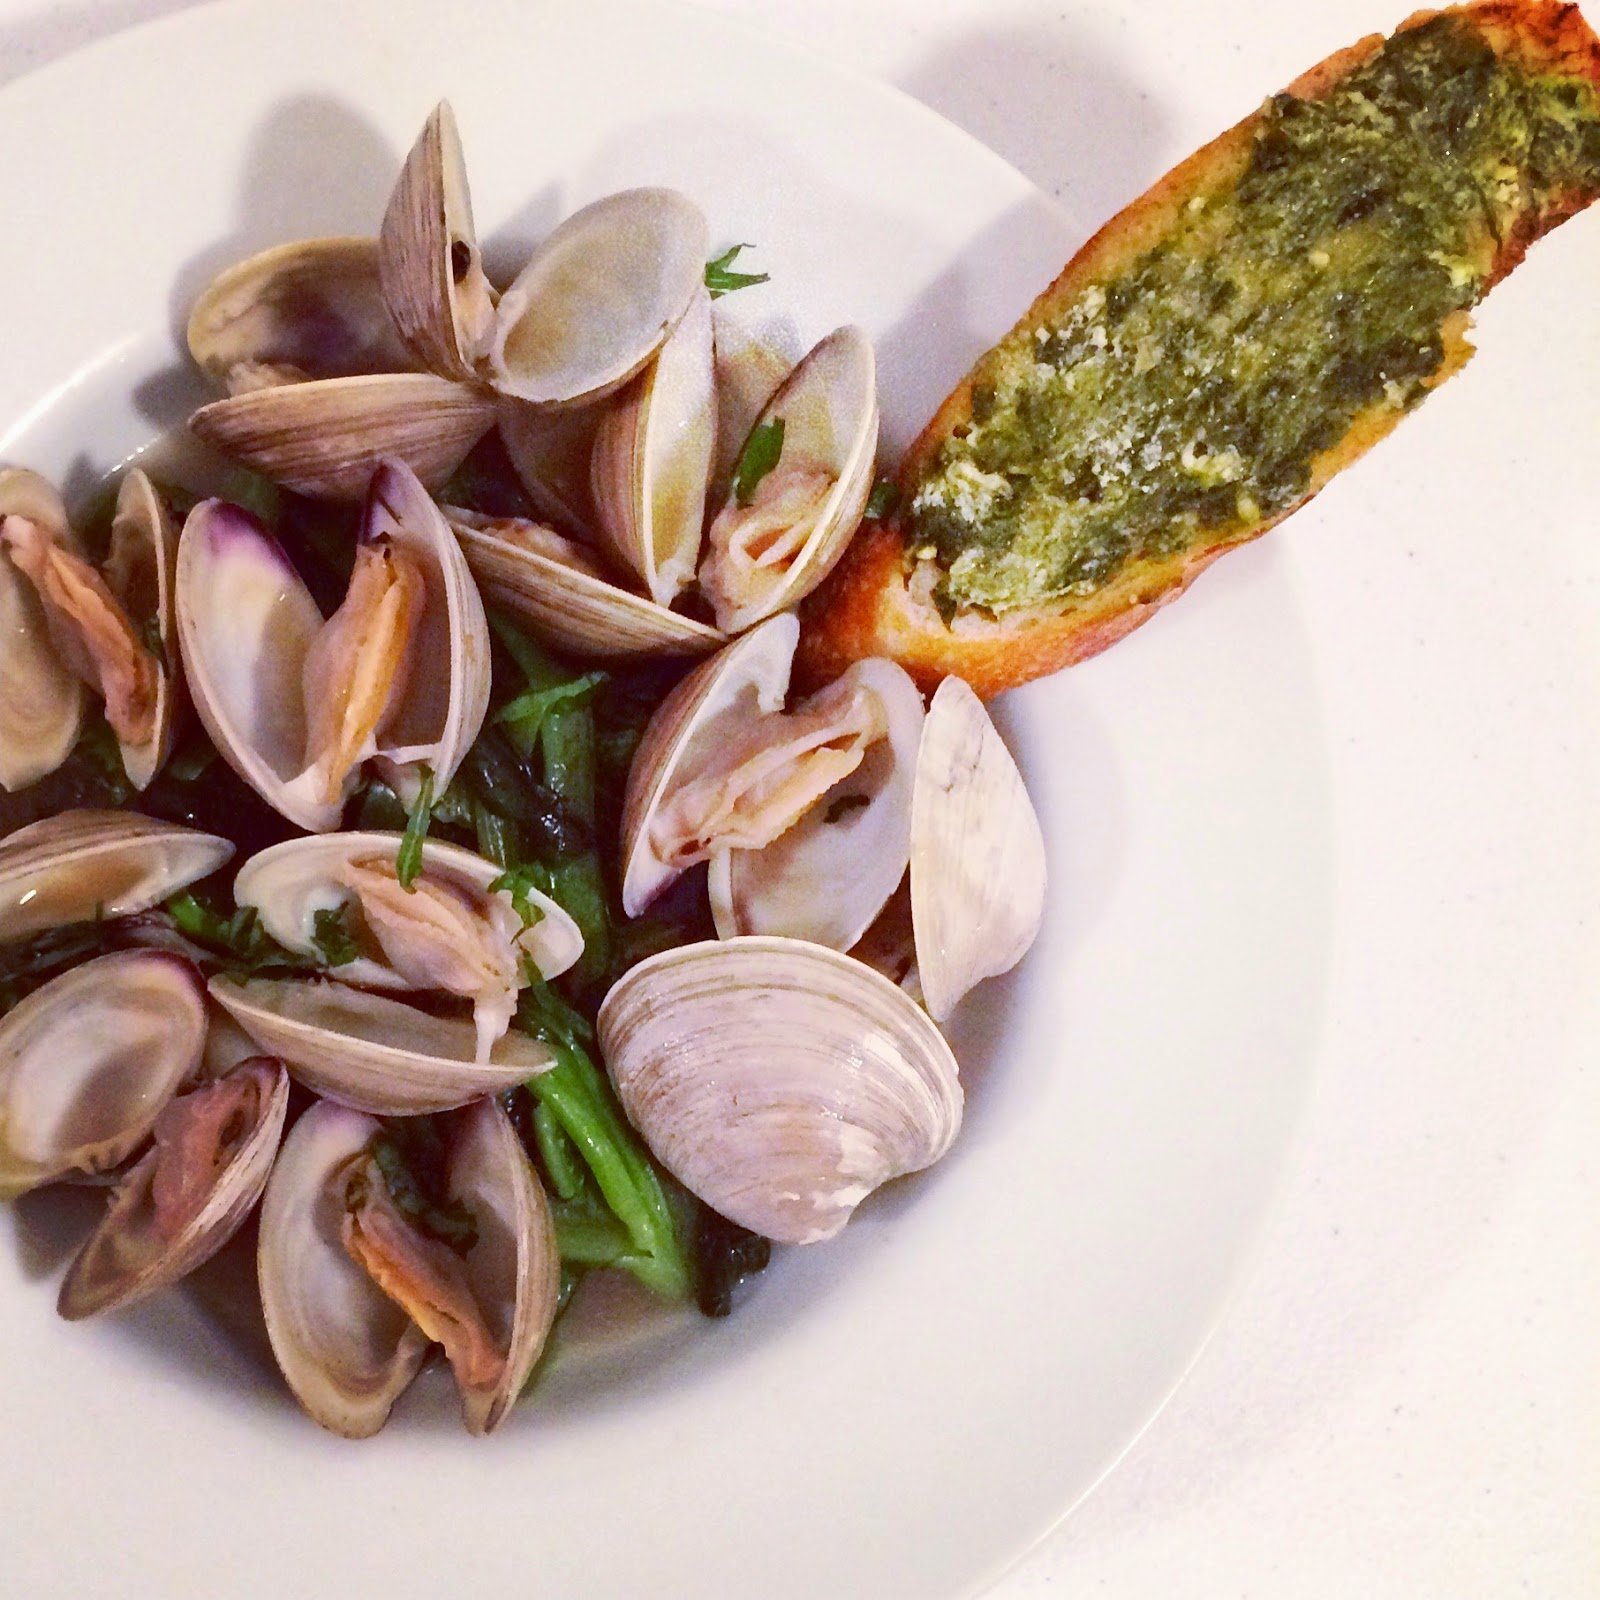 Savory Sweet Living: Beer-steamed Clams with Ramp and Goat Cheese